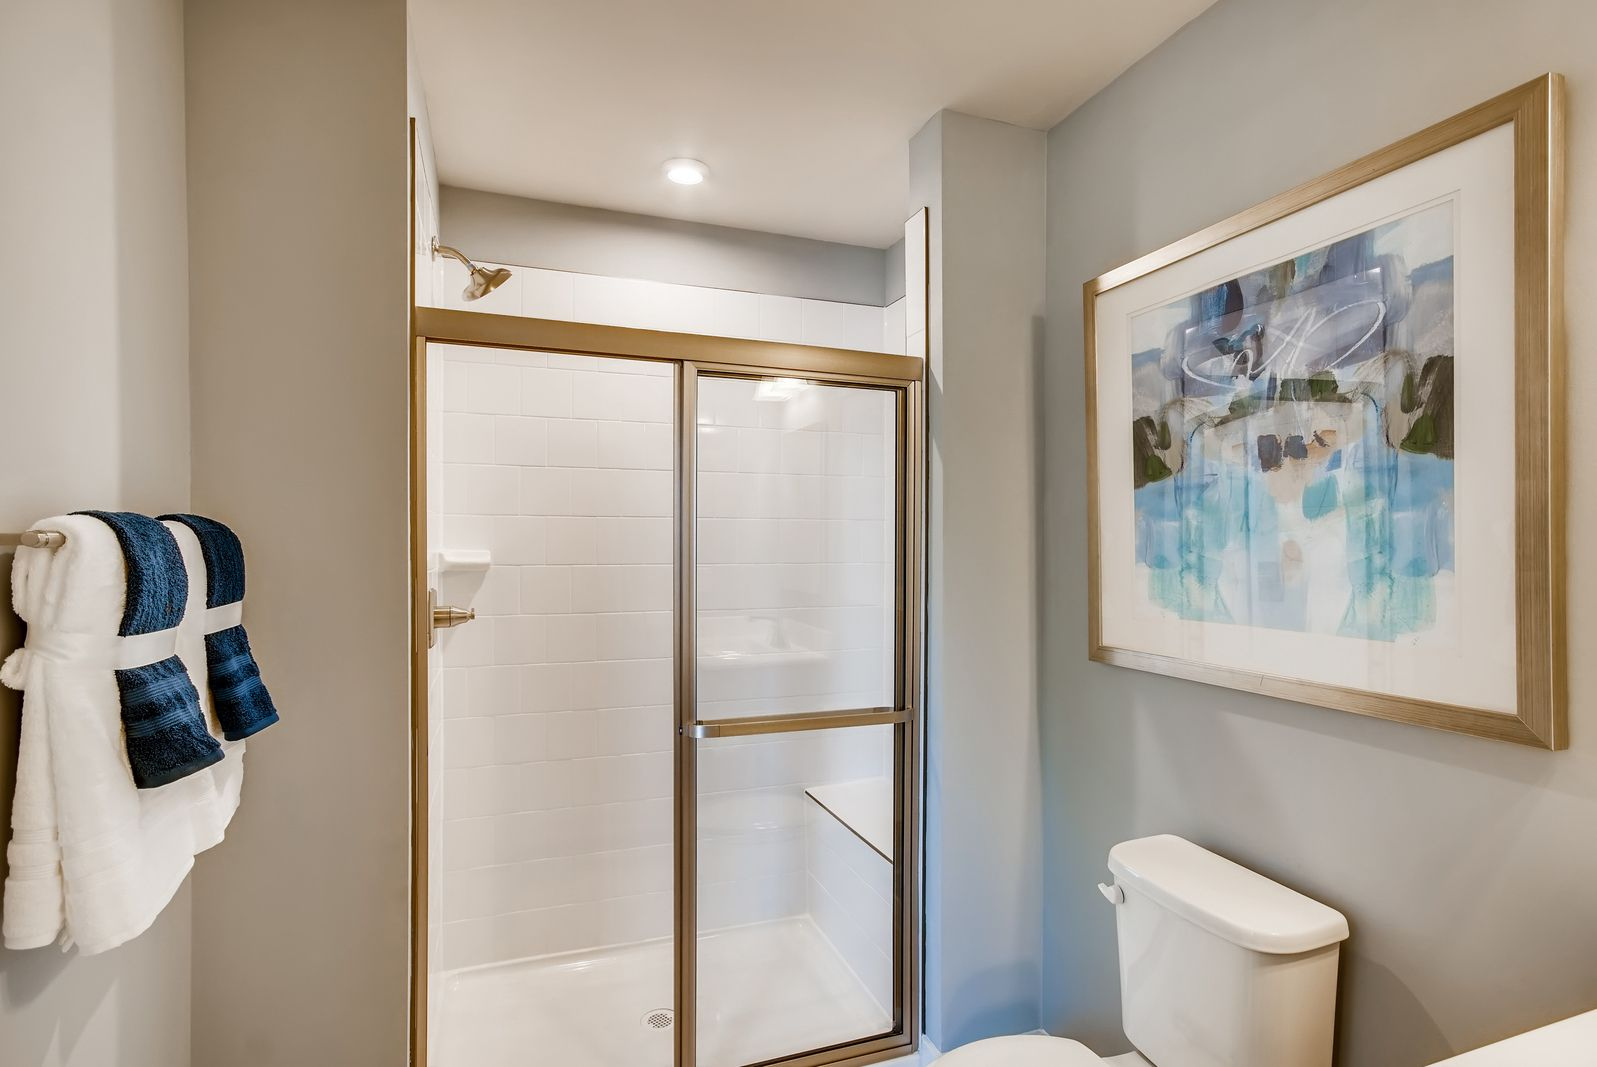 Bathroom featured in the Aruba By Ryan Homes in Rochester, NY